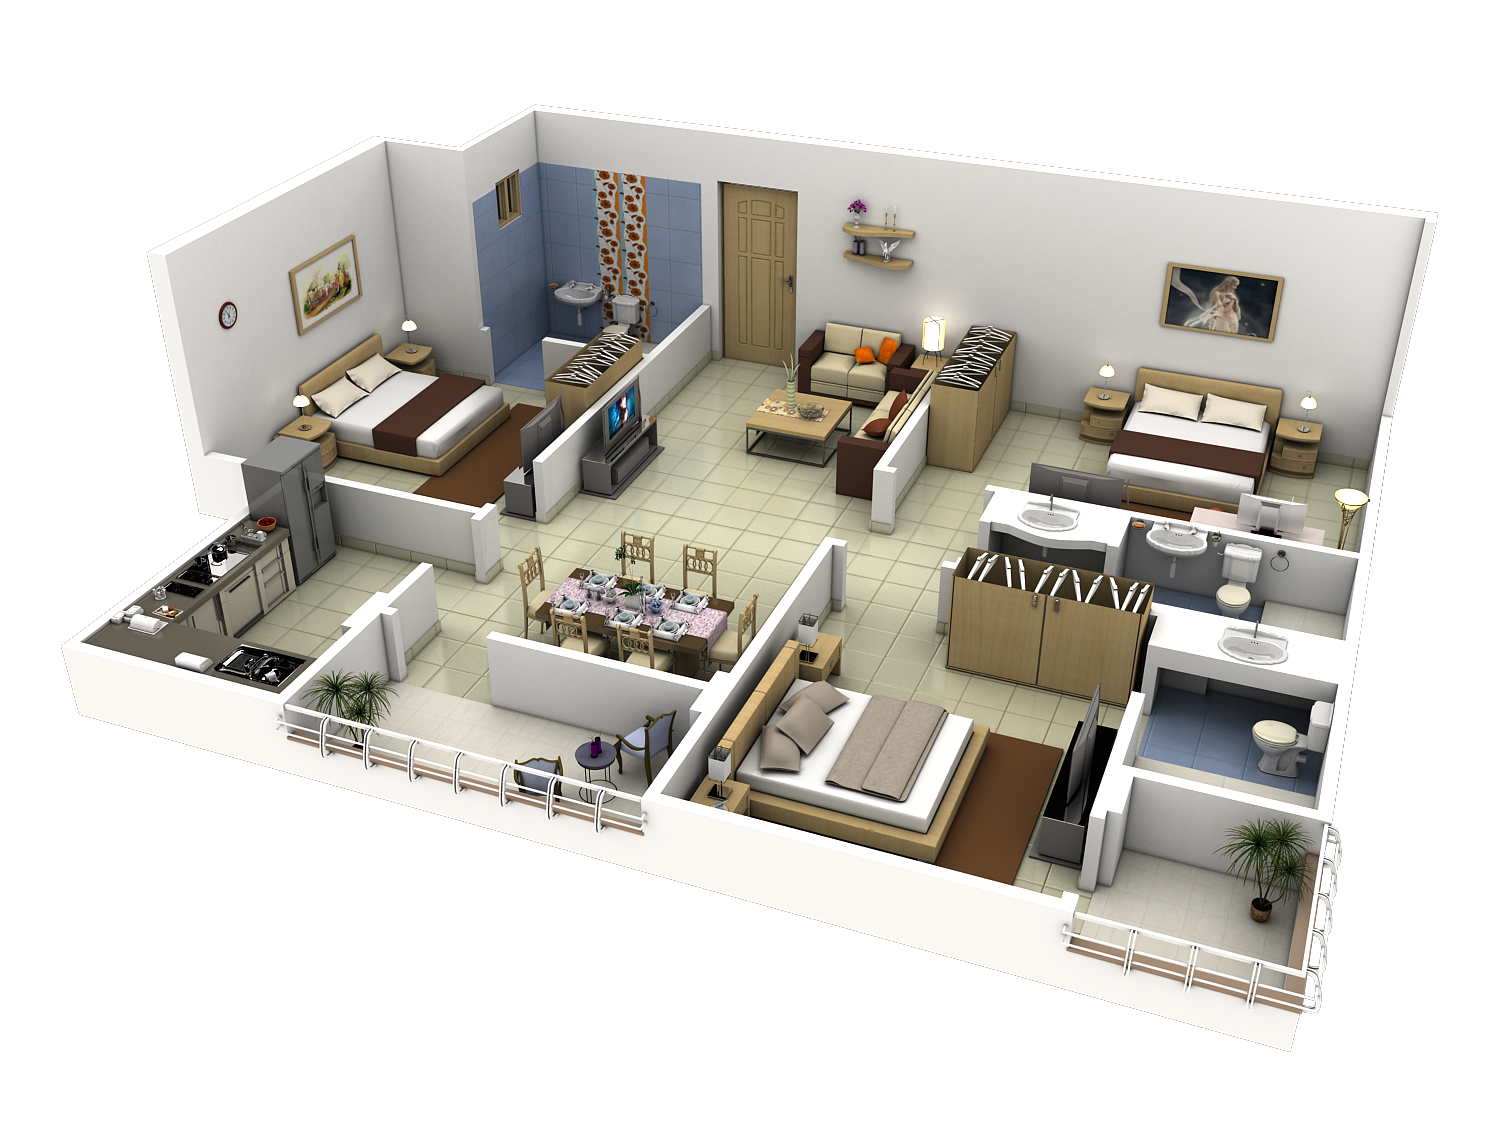 Interior design floor plan sketches png. Complete home d collection